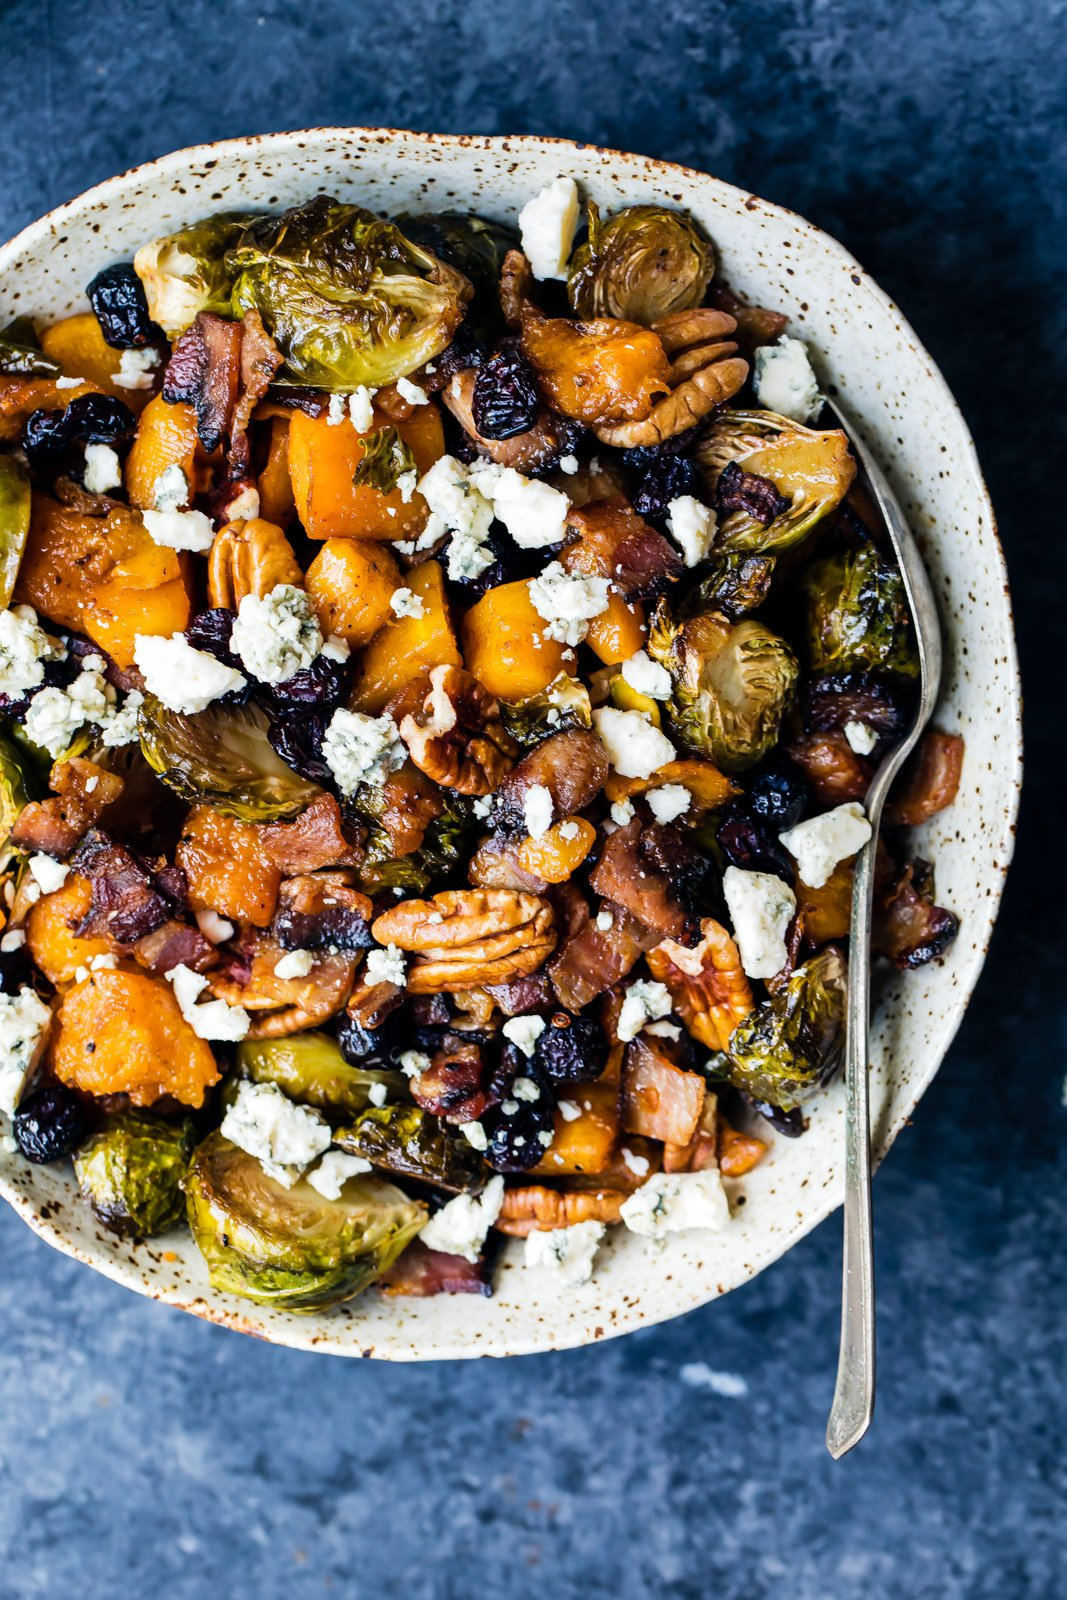 Sweet and spicy maple roasted butternut squash with brussels sprouts and savory, crispy bacon. This filling, veggie-packed dish is perfect for a side dish or a main meal!